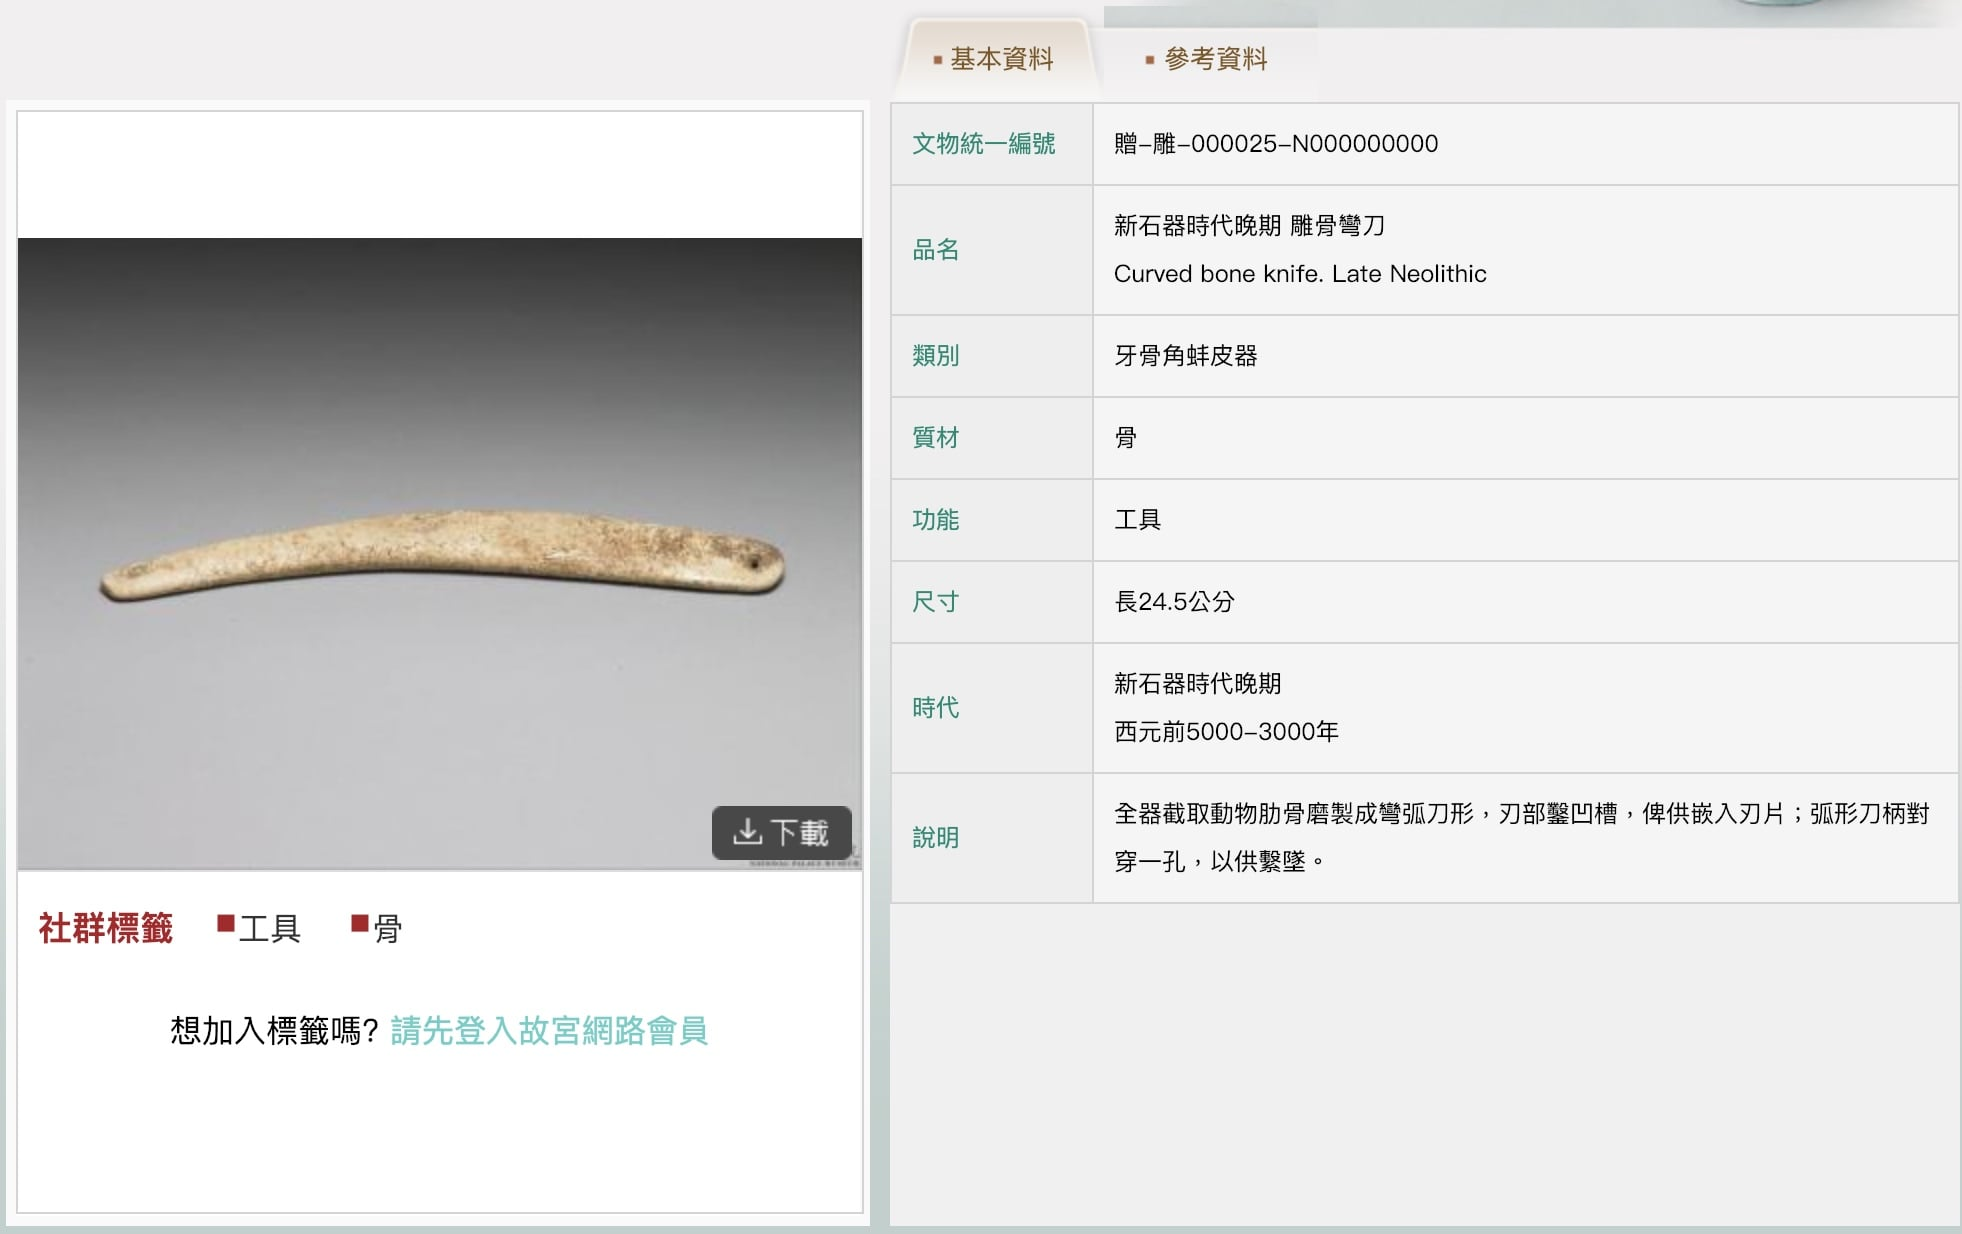 Curved bone knife Late Neolithic in National Palace Museum ROC